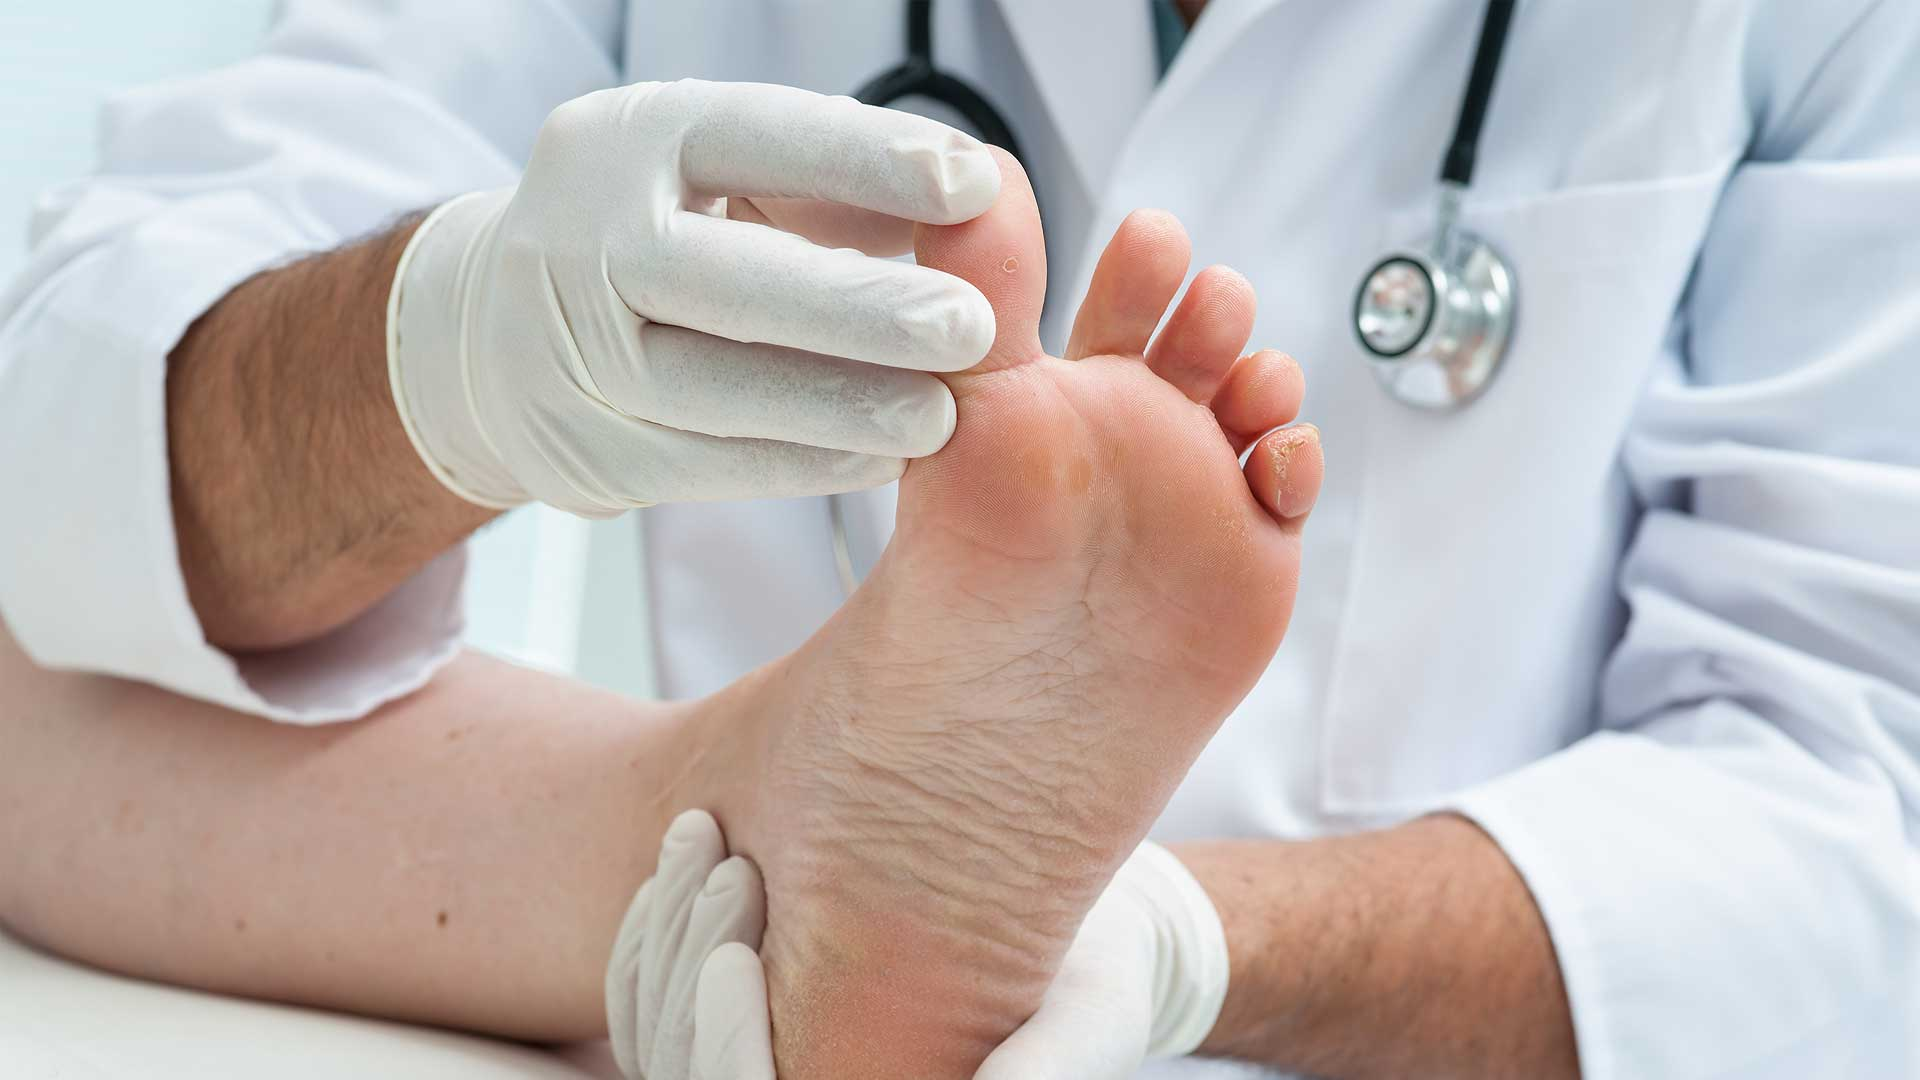 Birmingham Foot Clinic Treatment - Common Conditions Treated